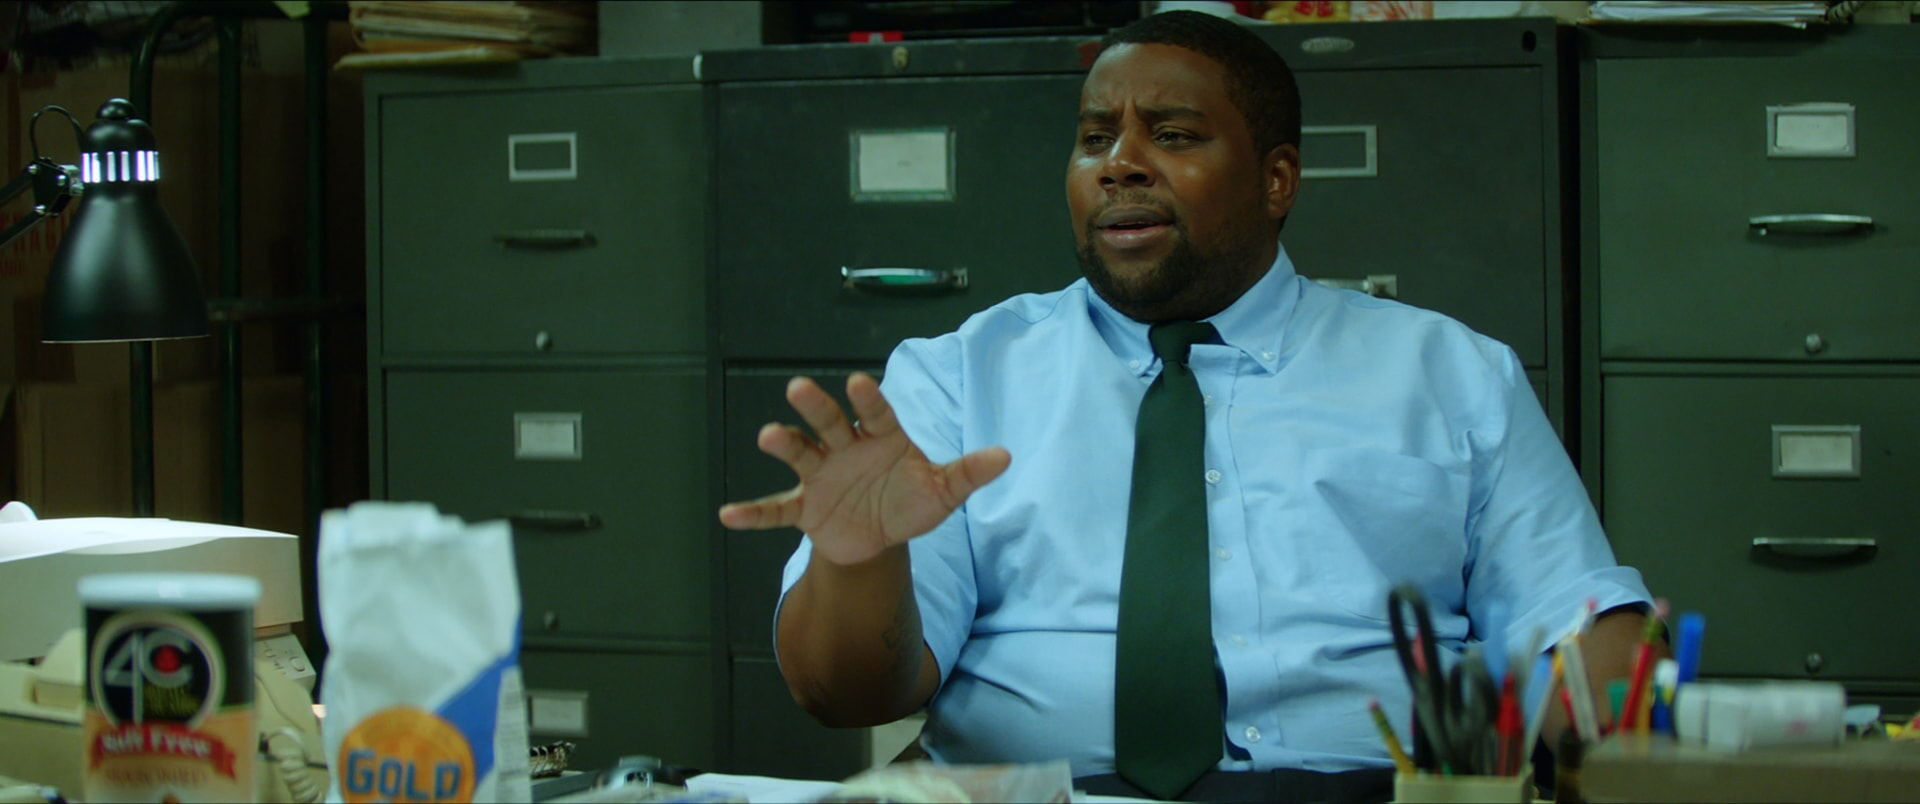 """KENAN THOMPSON as Manager Keith Schonfeld in the New Line Cinema and Village Roadshow comedy """"GOING IN STYLE,"""" a Warner Bros. Pictures release."""